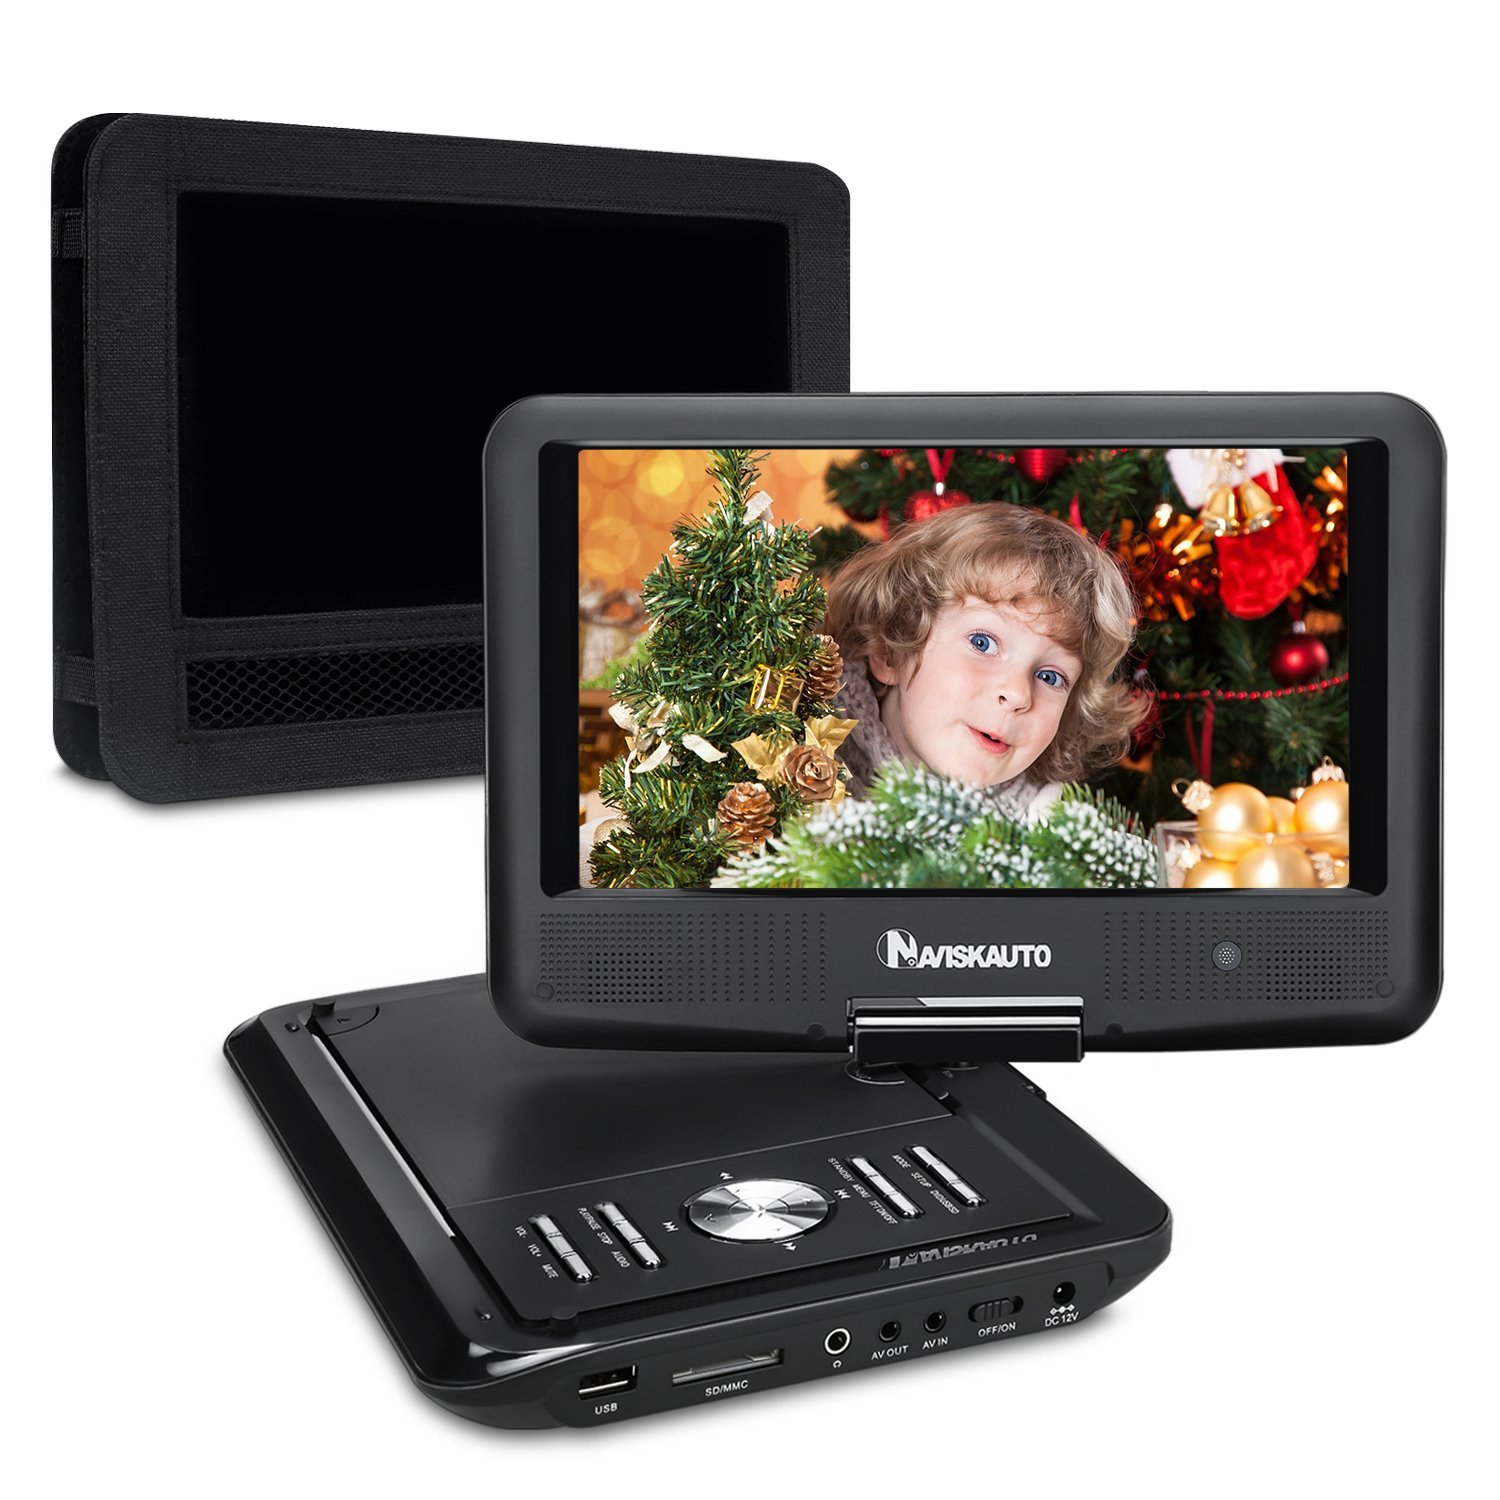 NAVISKAUTO 9 Inch Portable DVD/CD/MP3 Player USB/SD Card Reader with 5 Hour Built-In Rechargeable Battery, 270° Swivel Screen, 3m AC/DC Adapter and Customized Car Headrest Mount Case-Black